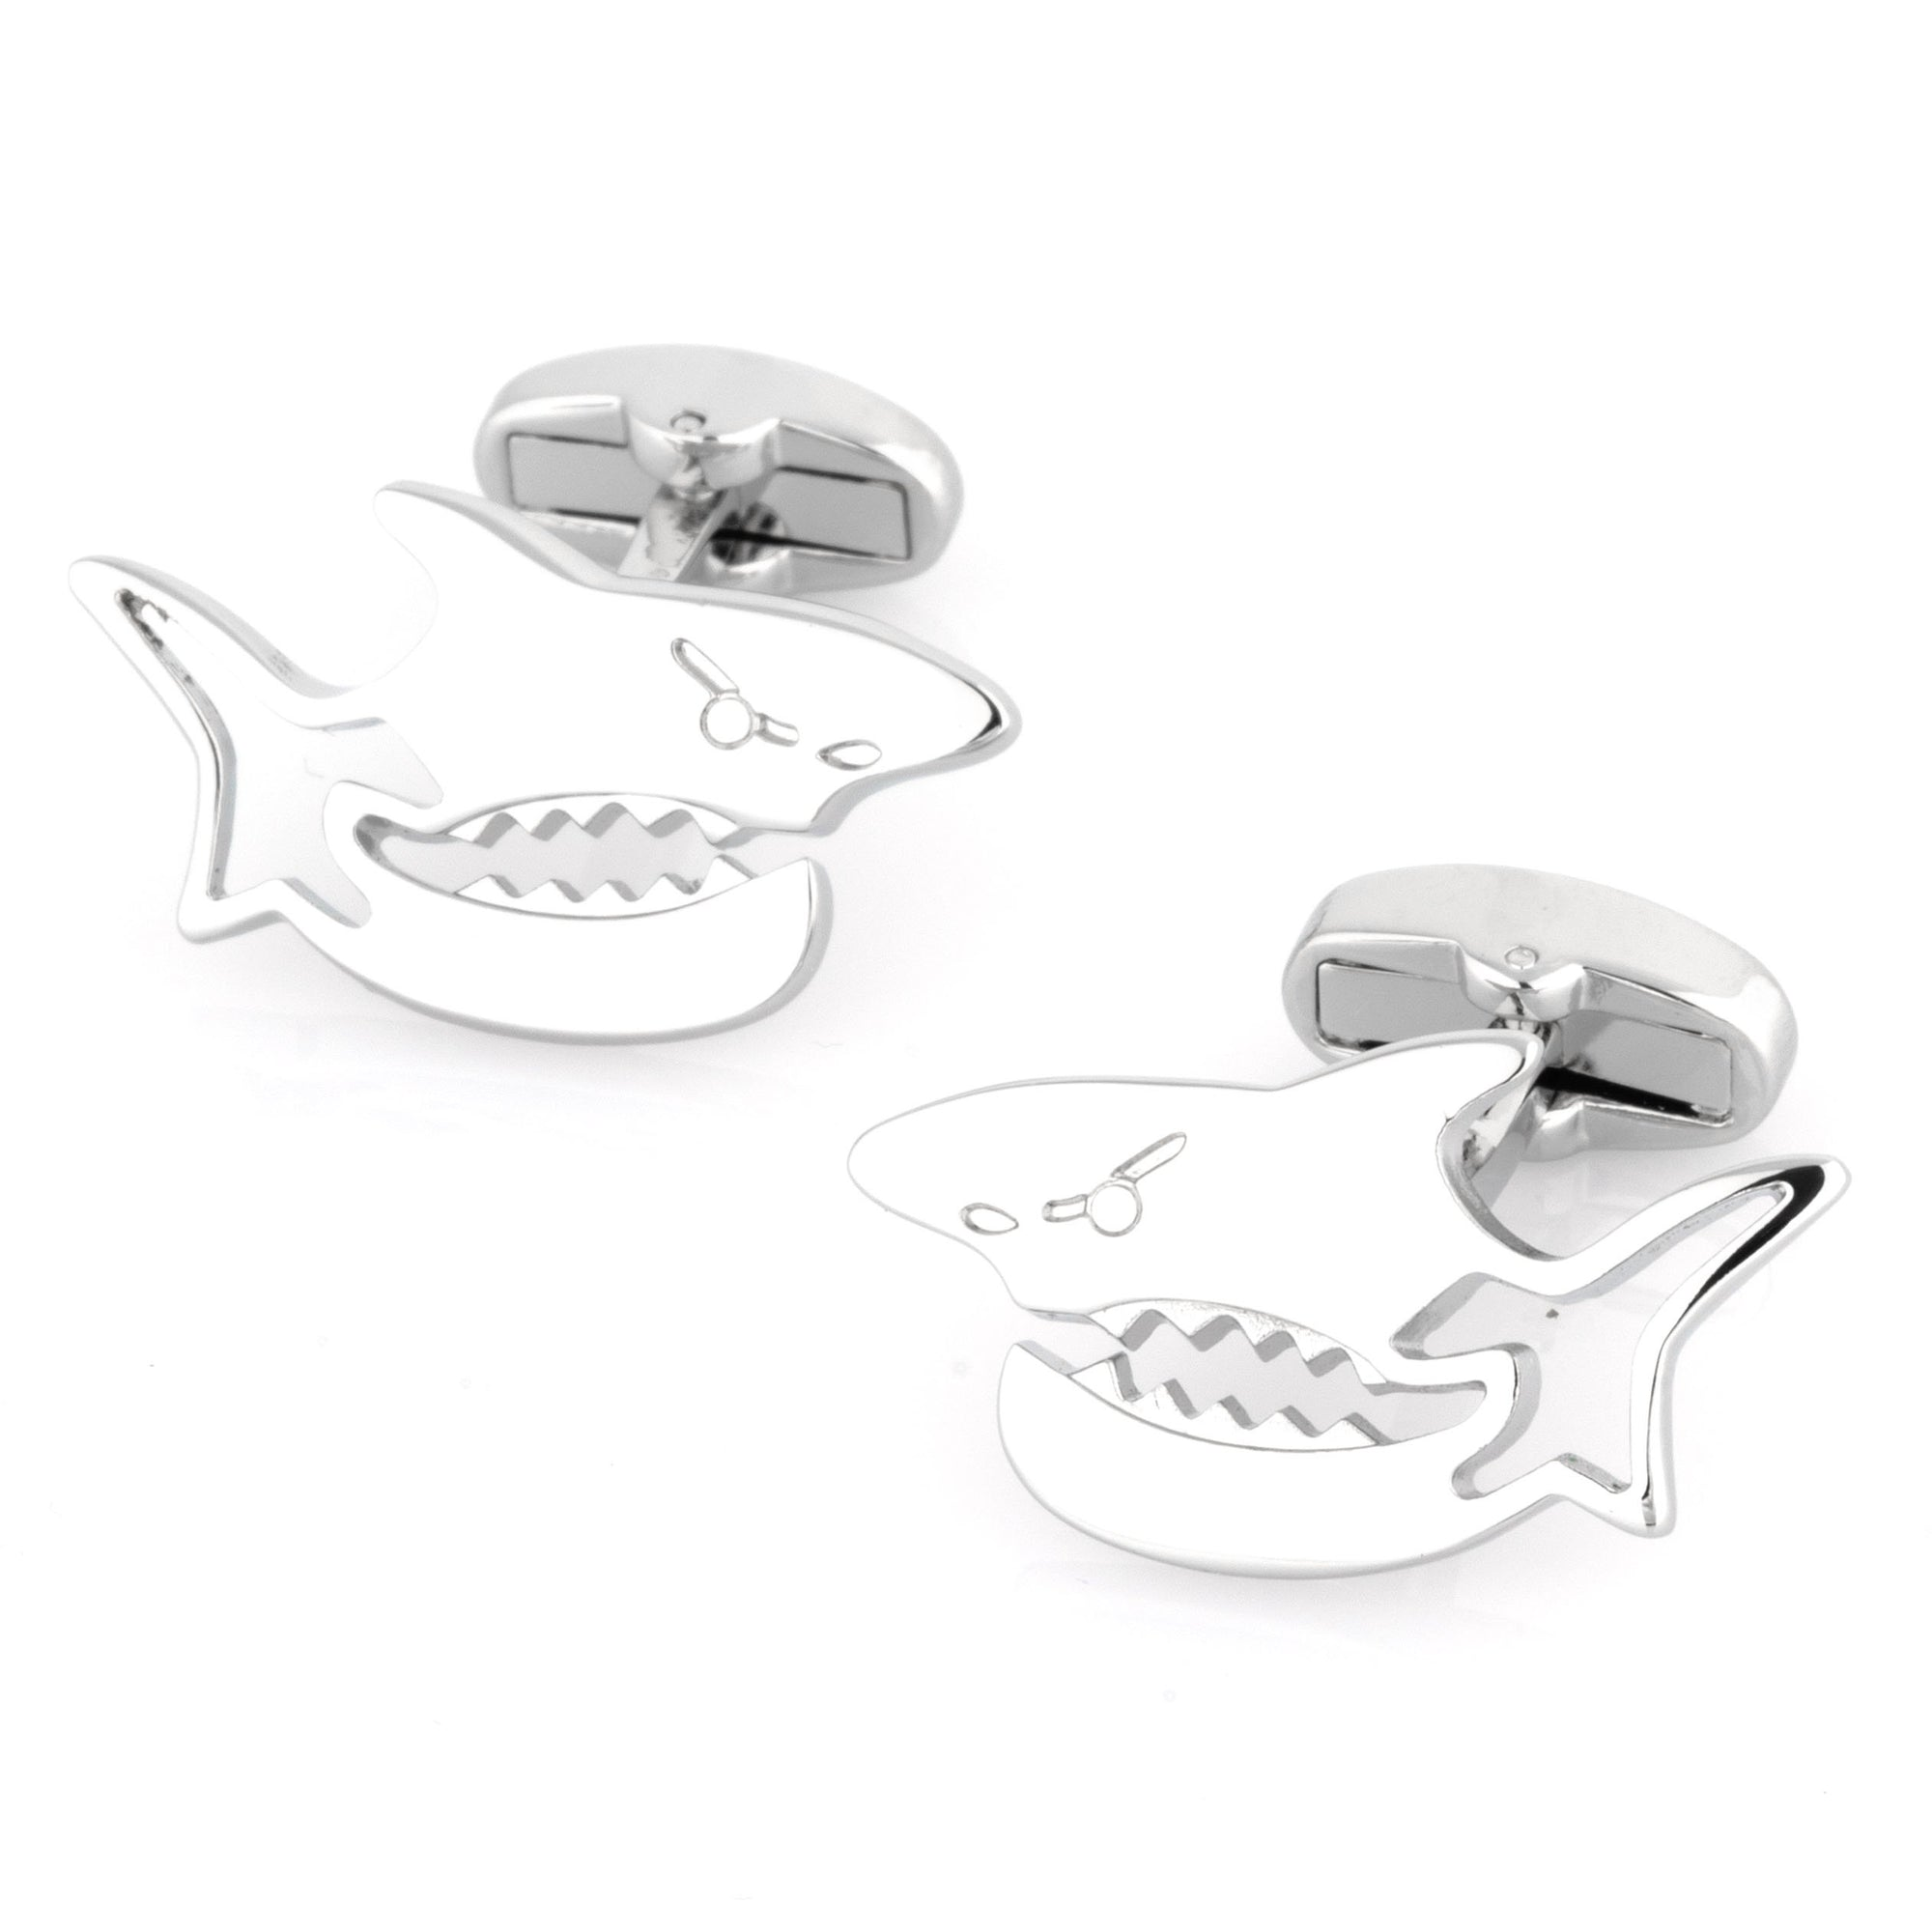 Silver Shark Cufflinks Novelty Cufflinks Clinks Australia Silver Shark Cufflinks